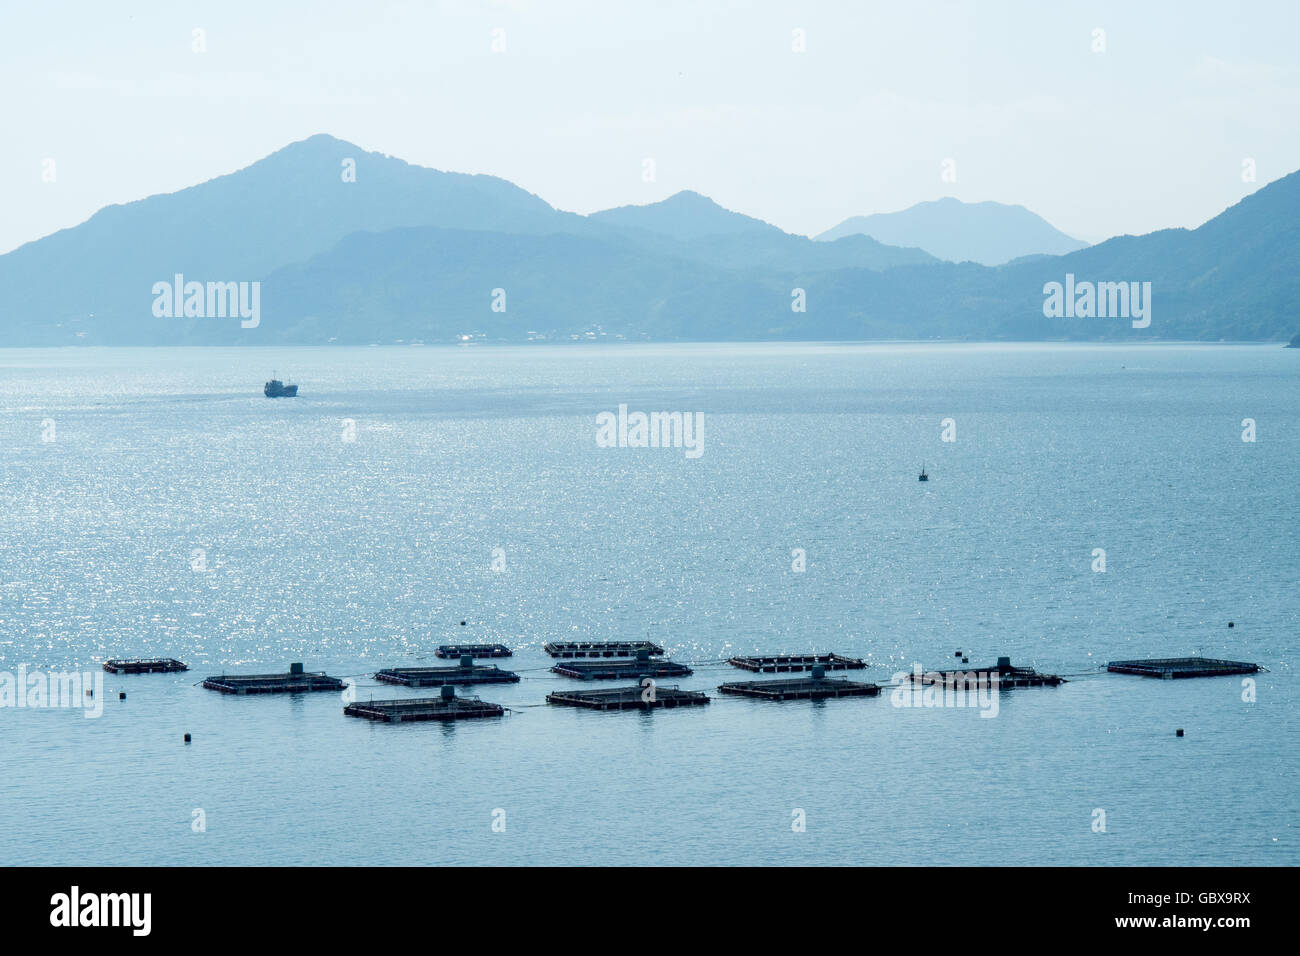 Oyster farming in the Seto Inland Sea, Japan. - Stock Image